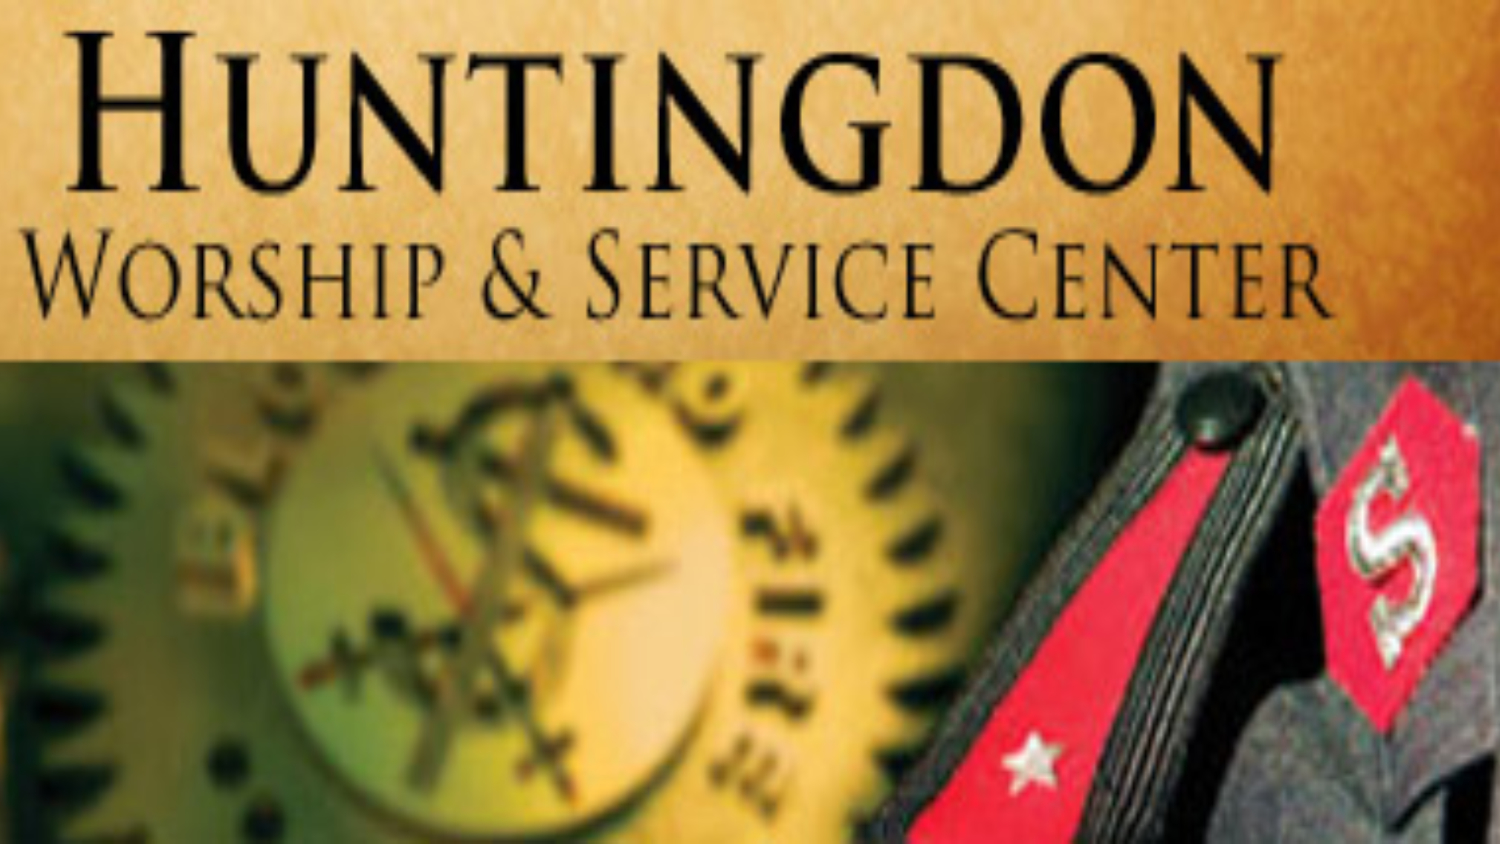 Huntingdon Salvation Army Worship and Service Center